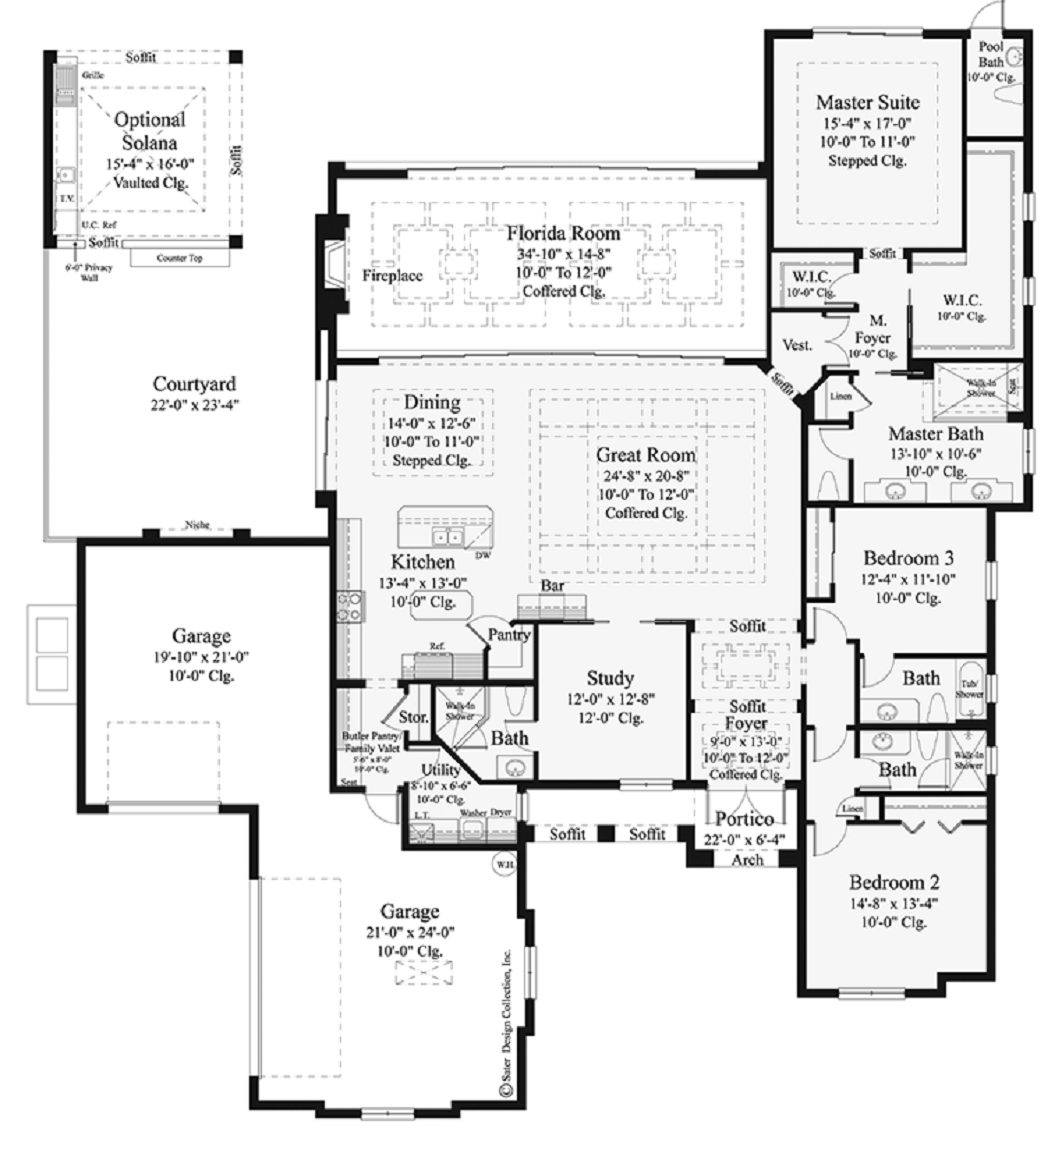 Open Floor Plans For Single Story Mediterranean Modern Homes 3394 Sq Ft With 3 Be Mediterranean Style House Plans Mediterranean Floor Plans Mediterranean Homes